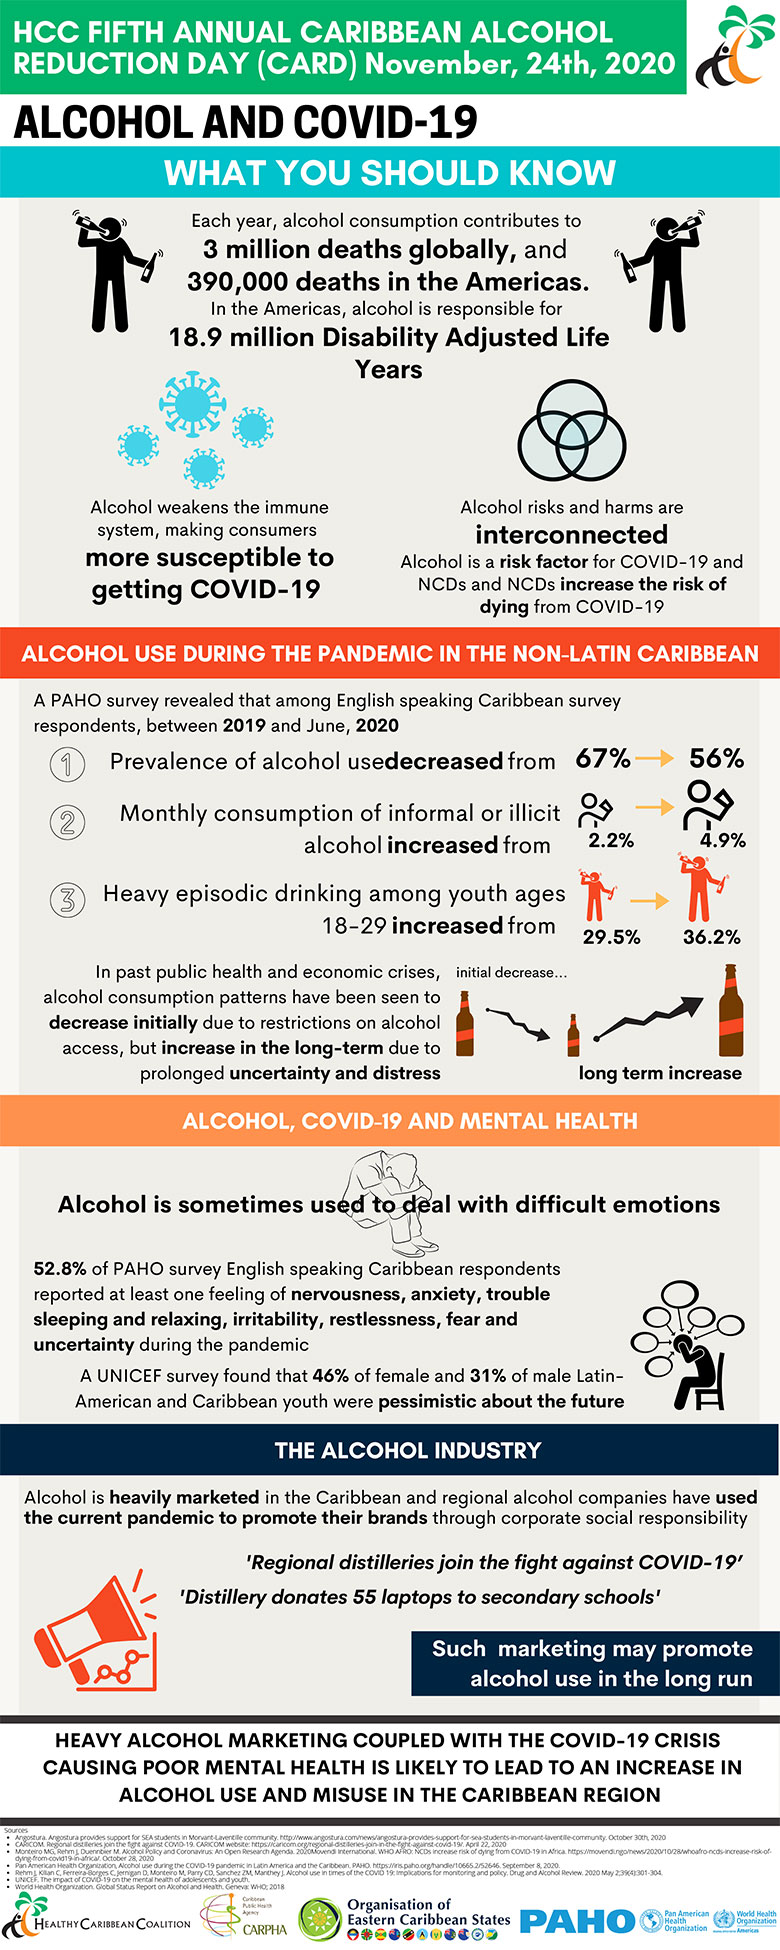 Caribbean Alcohol Reduction Day